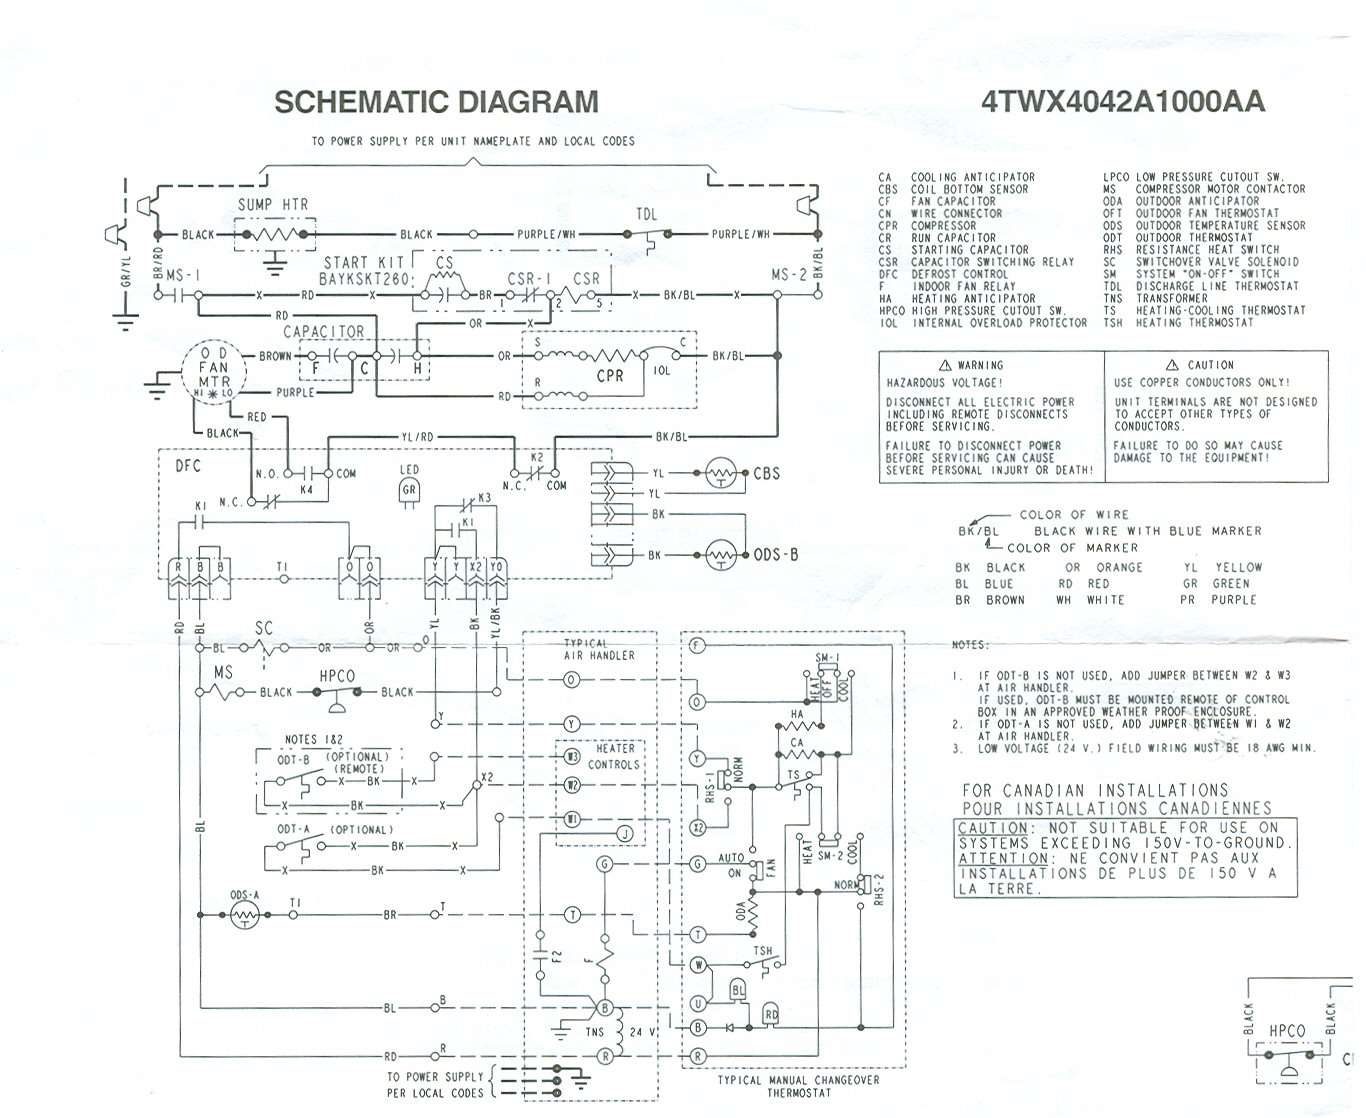 hp correct tstat wiring for xl14, defrost cycle trouble goodman defrost control board wiring diagram at bakdesigns.co